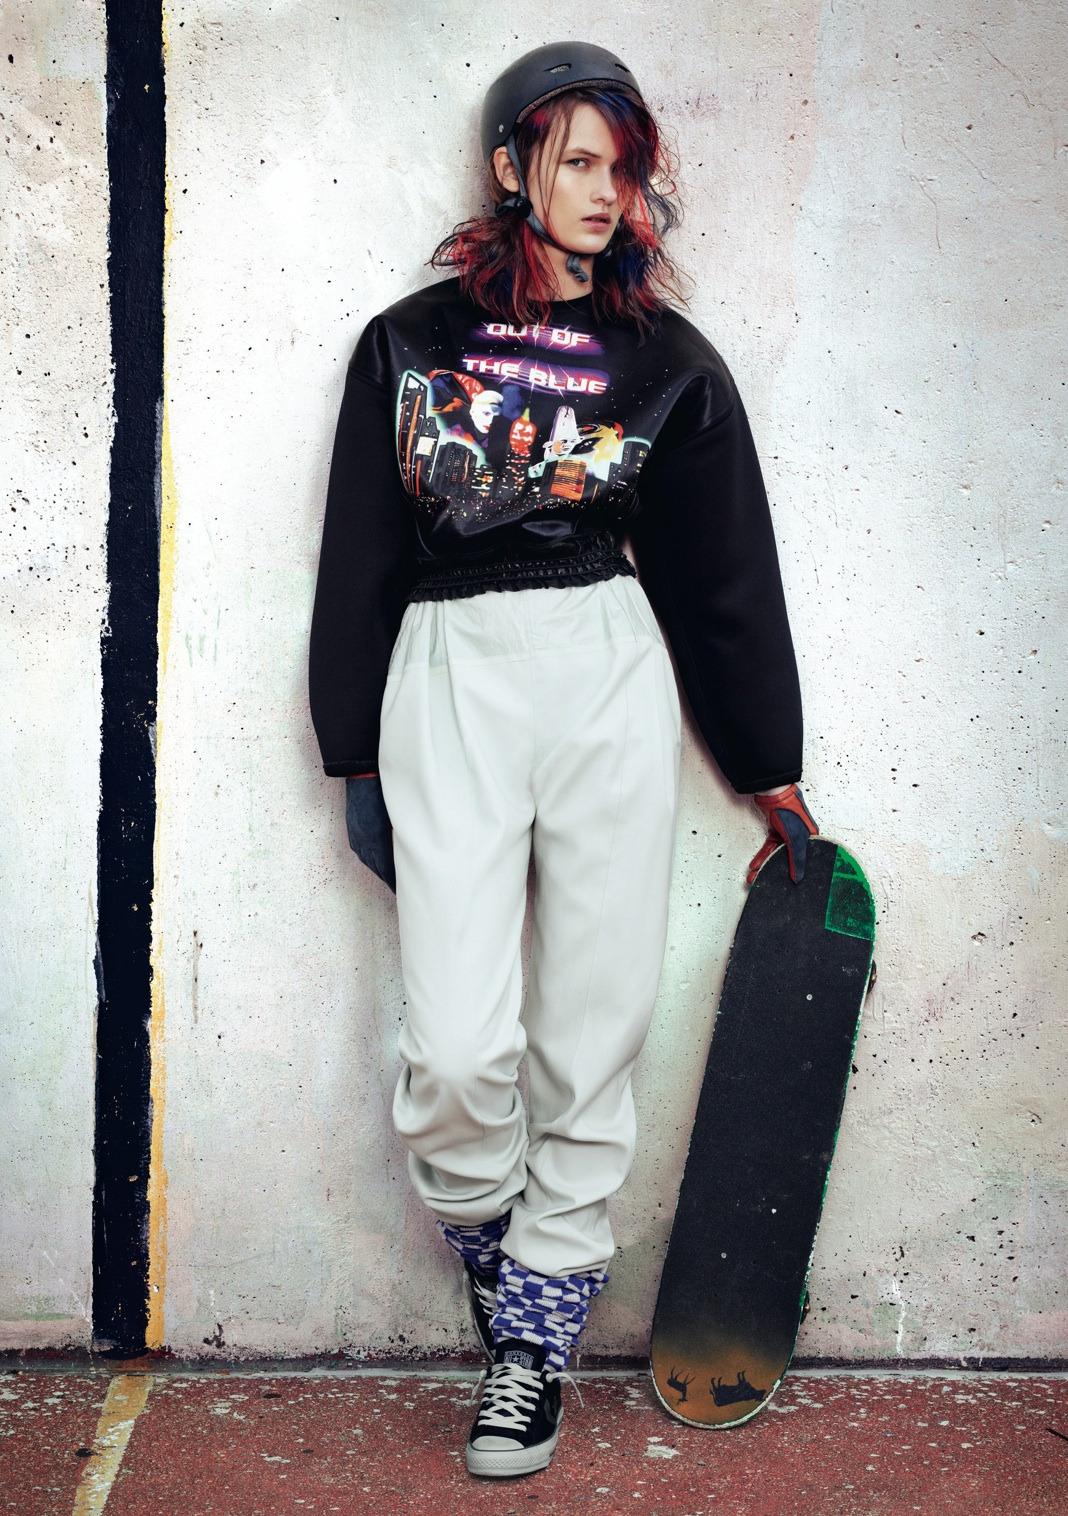 She Was A Skater Girl - Dazed & Confused August 2012